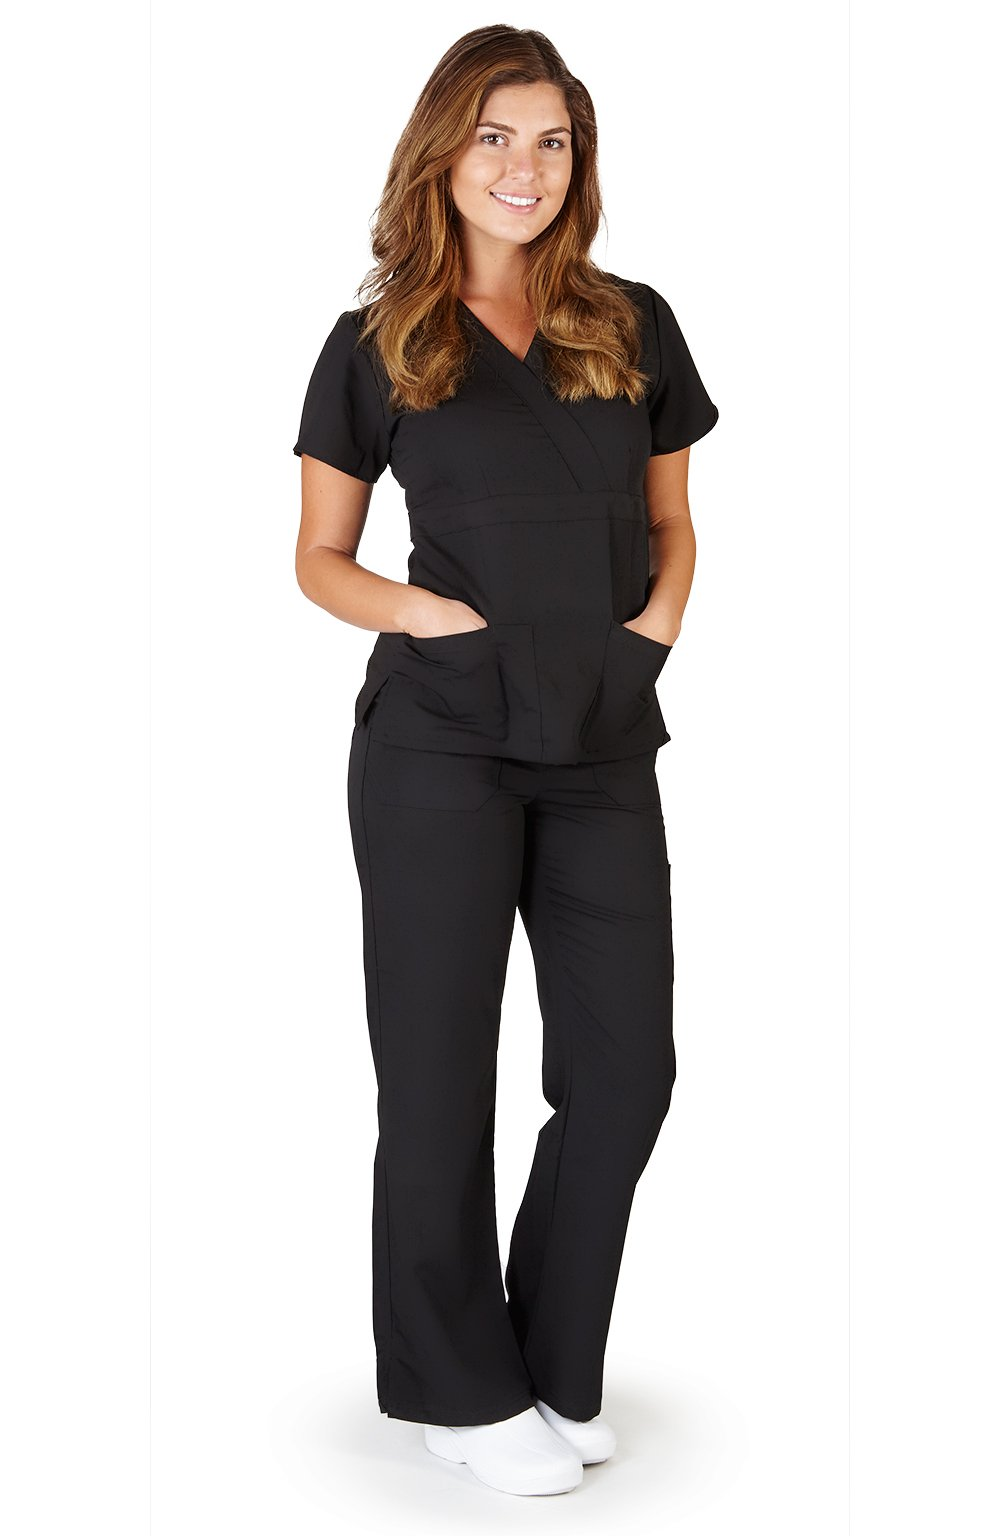 Ultra Soft Brand Scrubs - Premium Womens Junior Fit 3 Pocket Mock Wrap Scrub Set, Black 37906-XX-Small